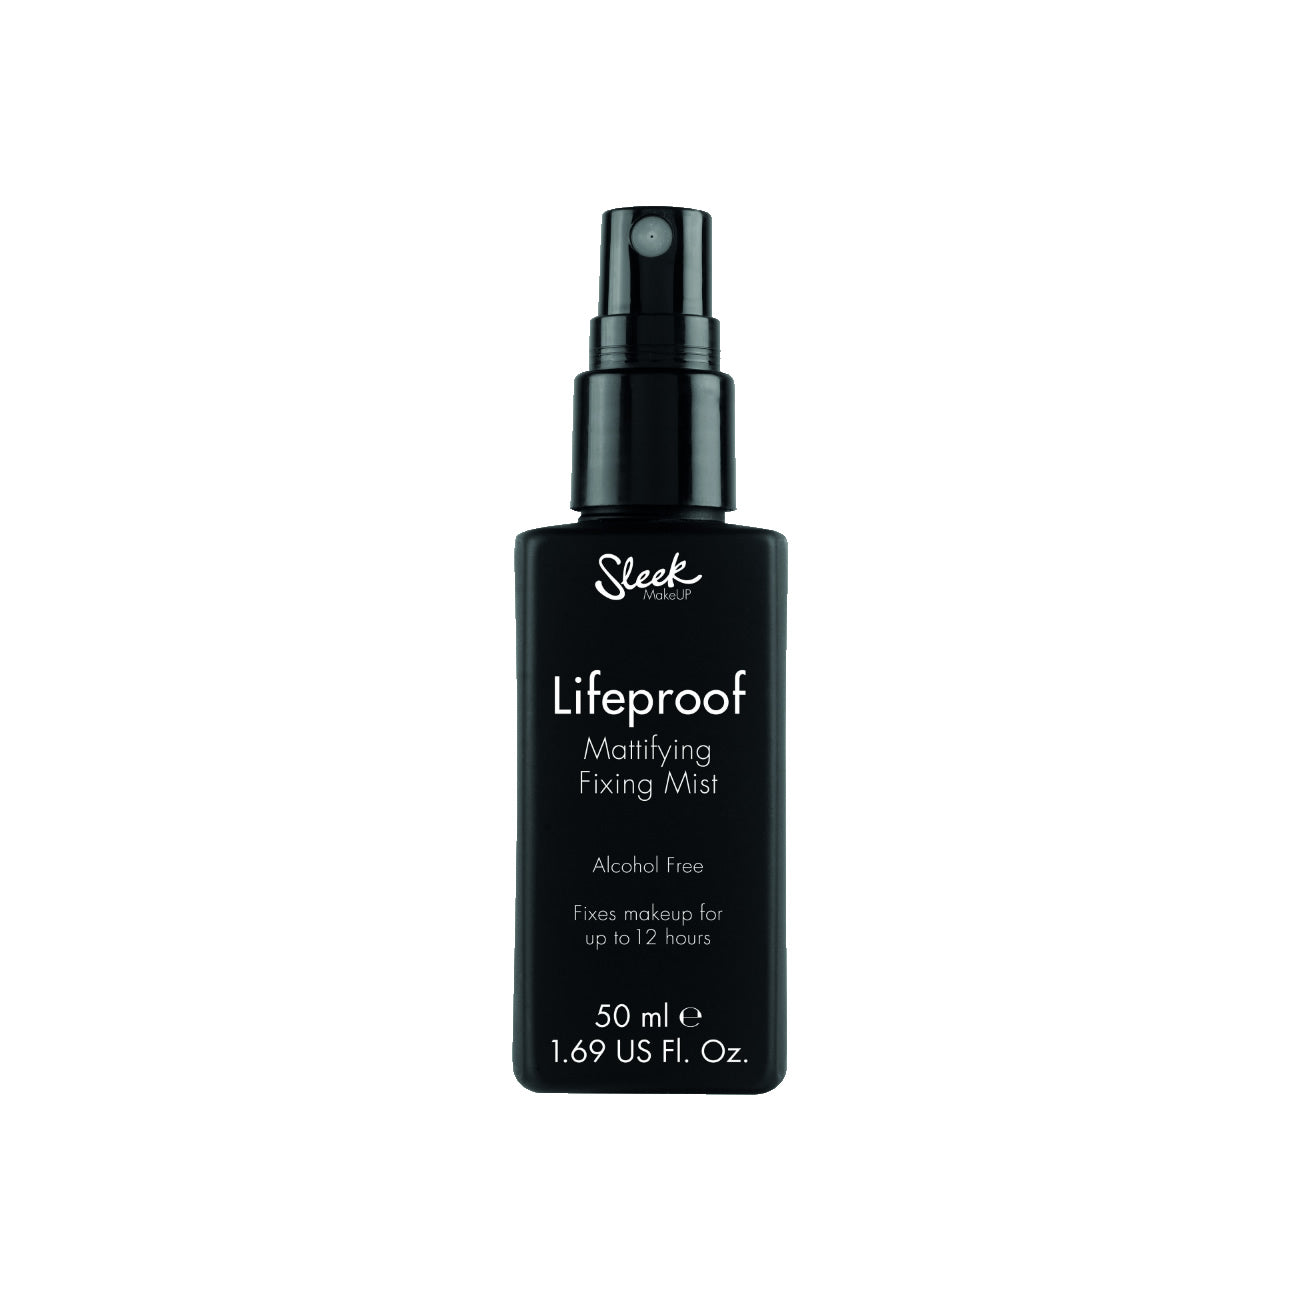 Sleek Lifeproof Mattifying Fixing Mist